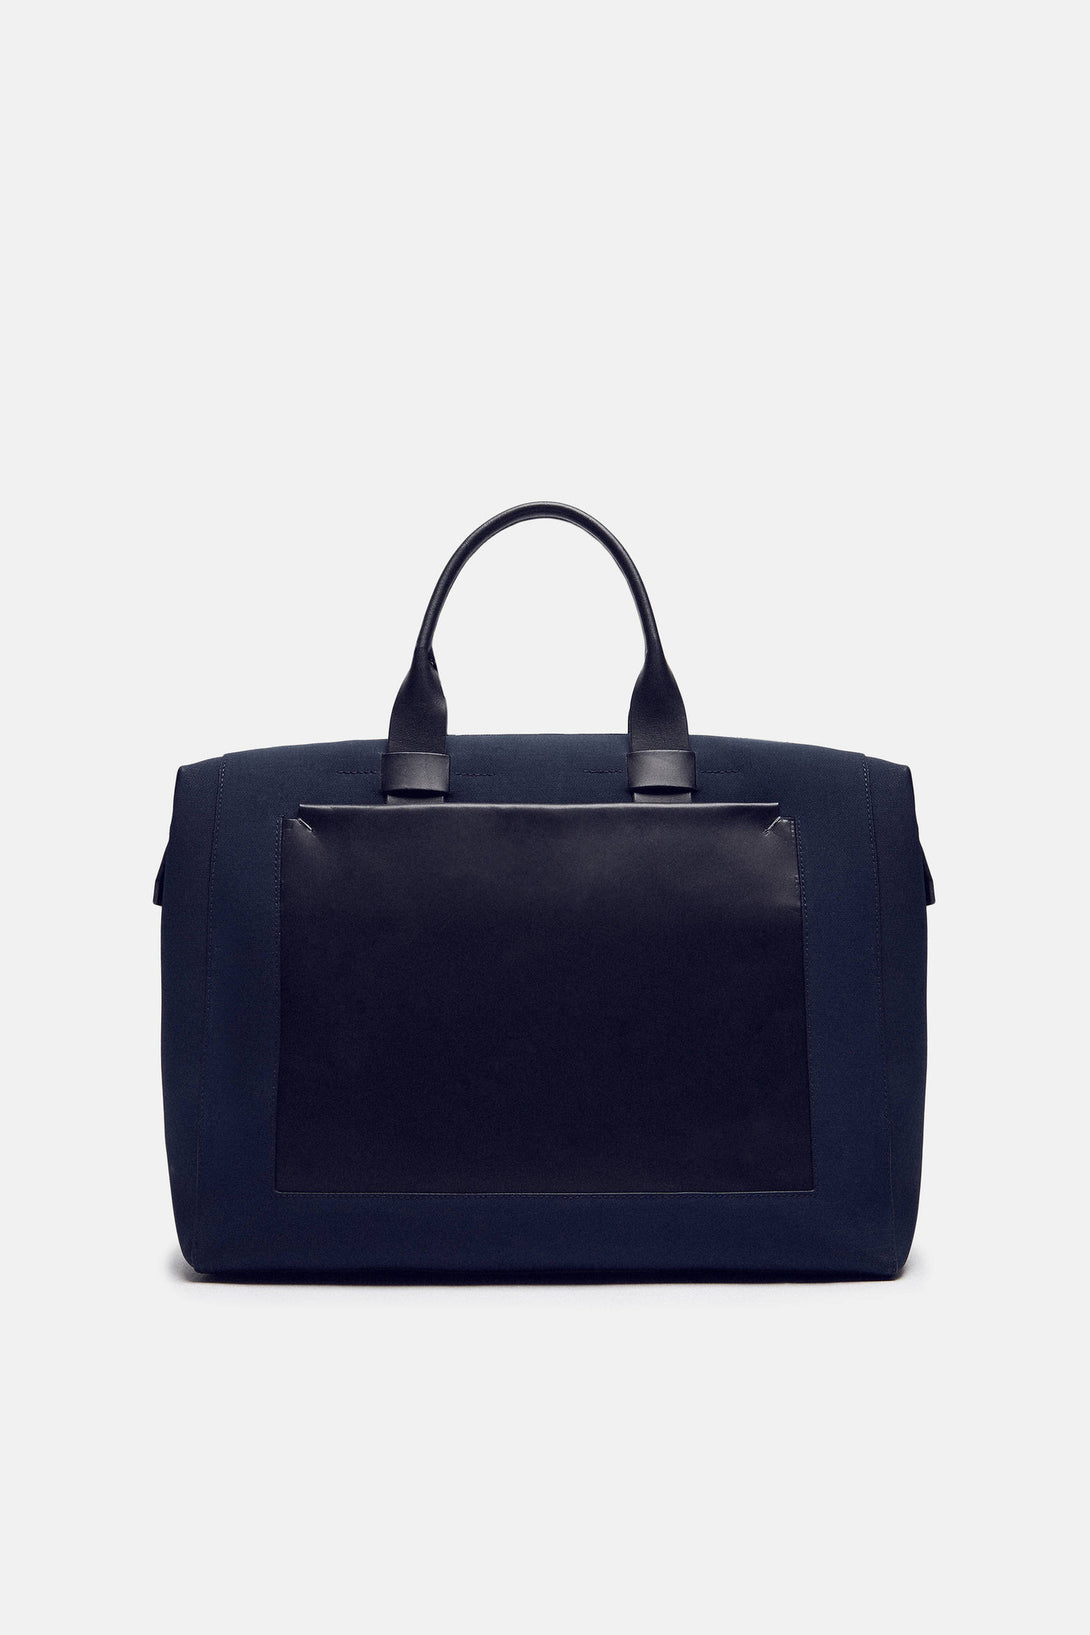 24-Hour Bag - Navy Coated Canvas